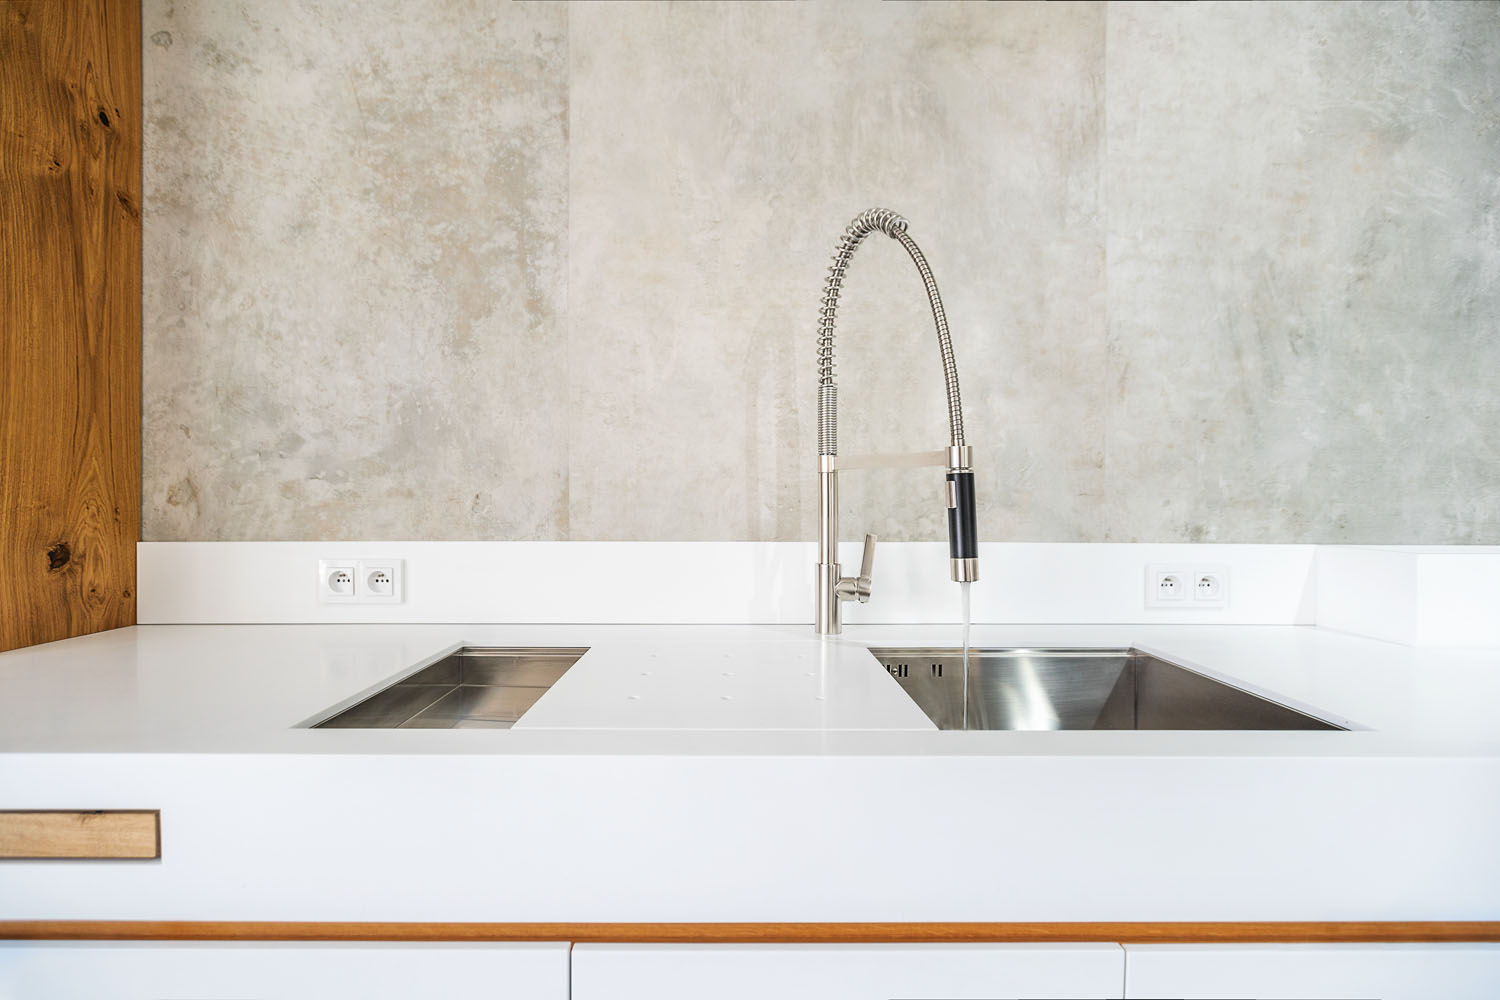 plan 3 kitchens / plan 3 kitchen Showroom in Zlin / kitchen with a potential to become a trend